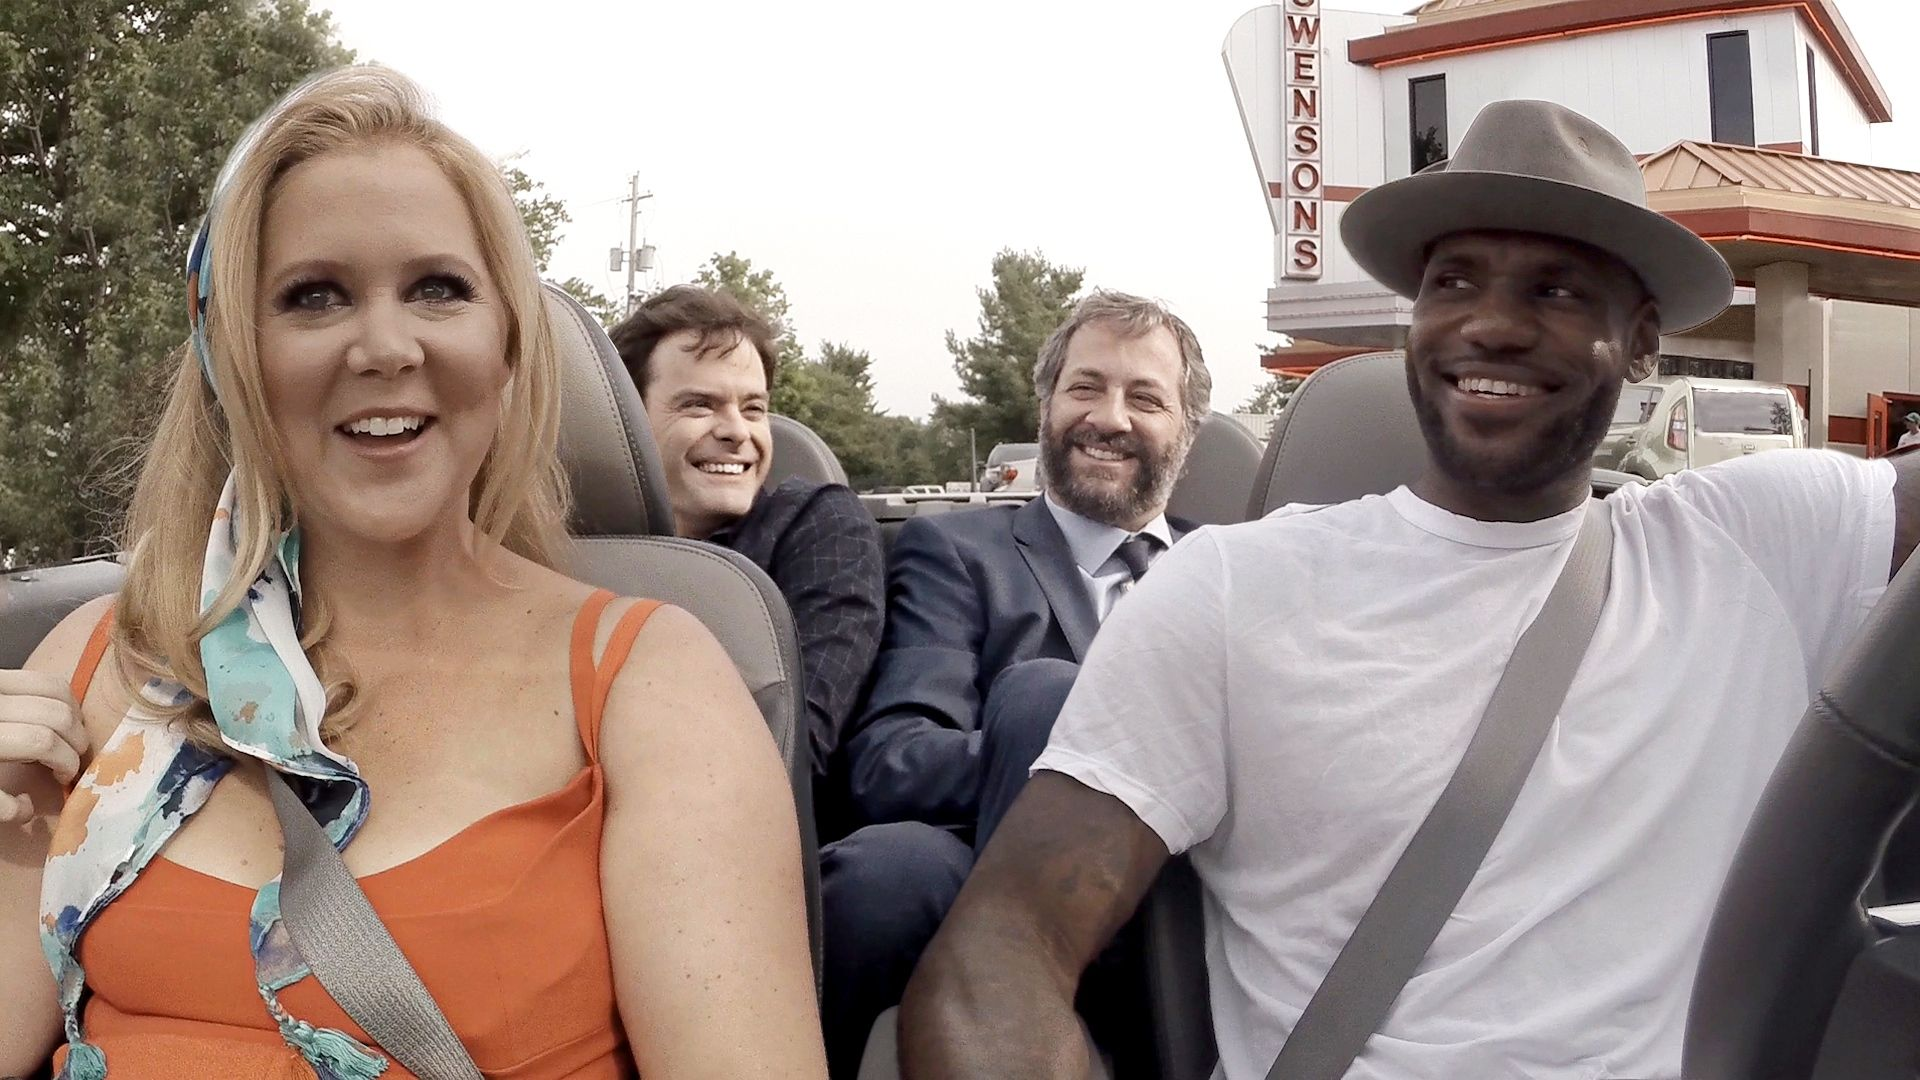 On the way to the Trainwreck movie premiere, LeBron James pitches ideas for a sequel to Amy Schumer, Judd Apatow, and Bill Hader while getting burgers at his favorite restaurant in Akron, Ohio, Swensons.